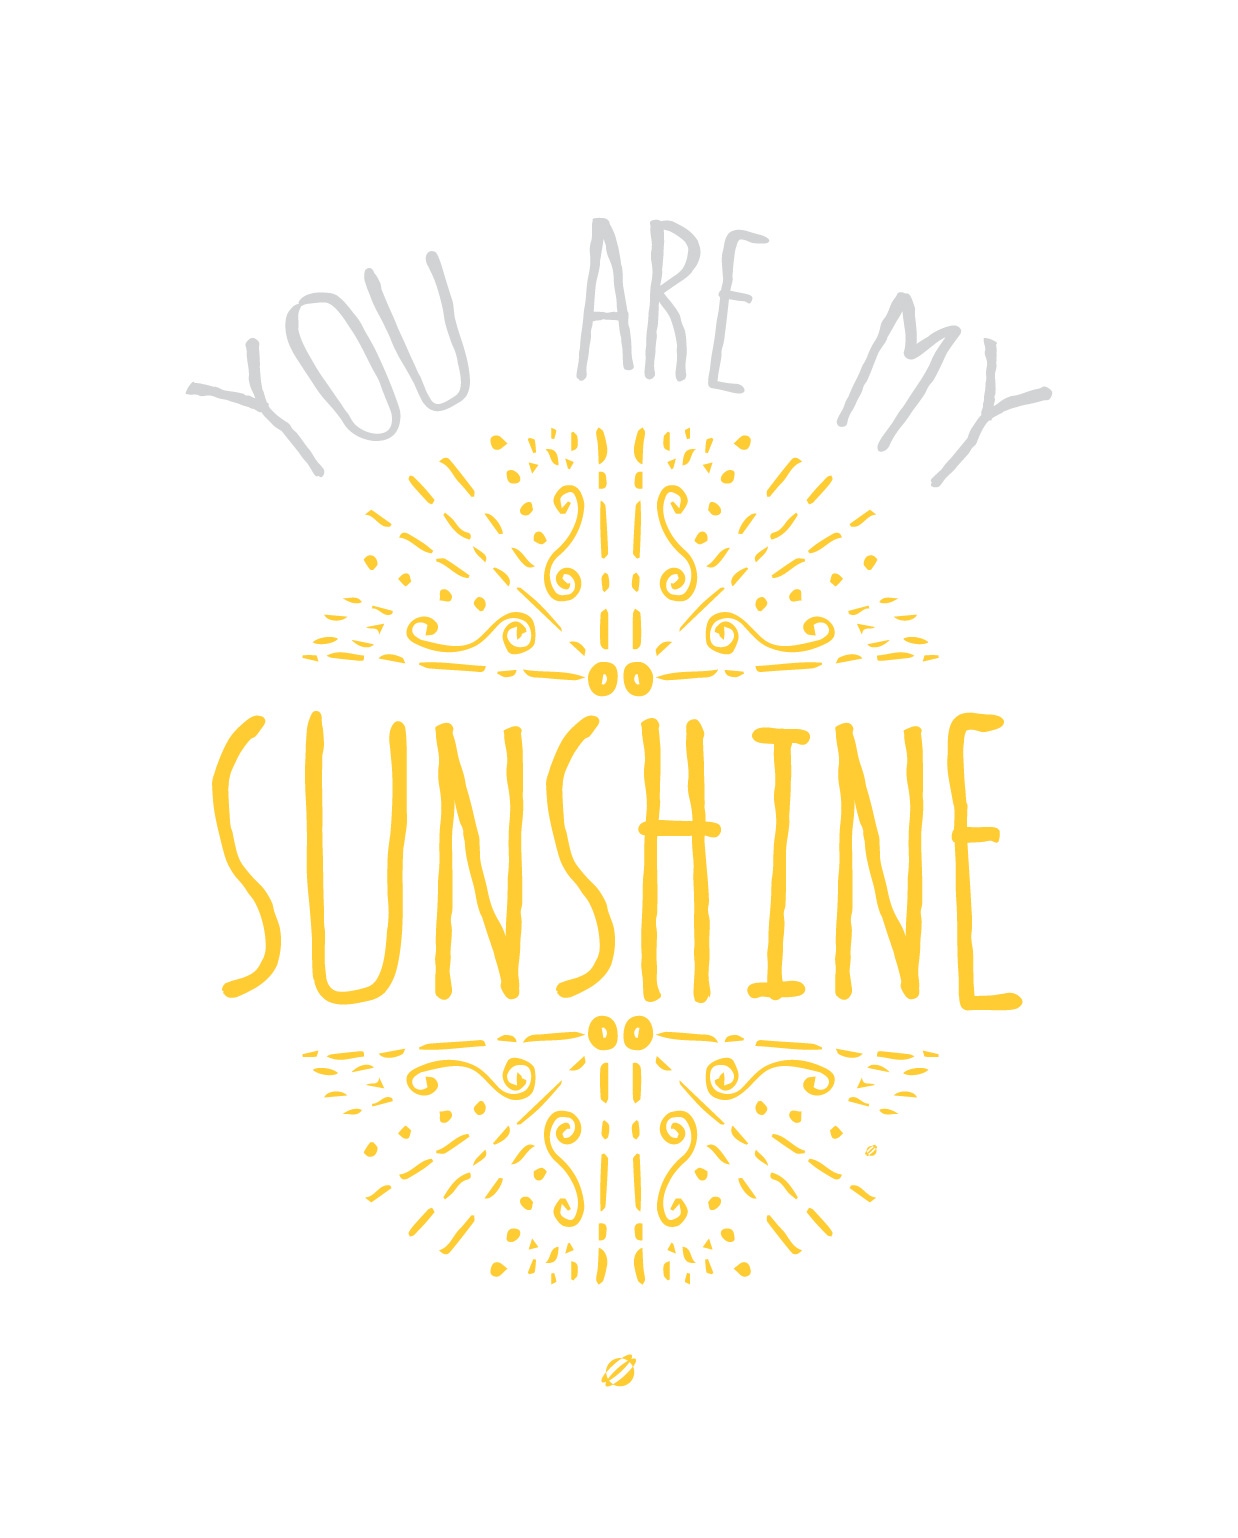 LostBumblebee ©2015 MDBN You are My Sunshine :: Free - donate to download - Printable :: Home Decor :: Personal Use Only.